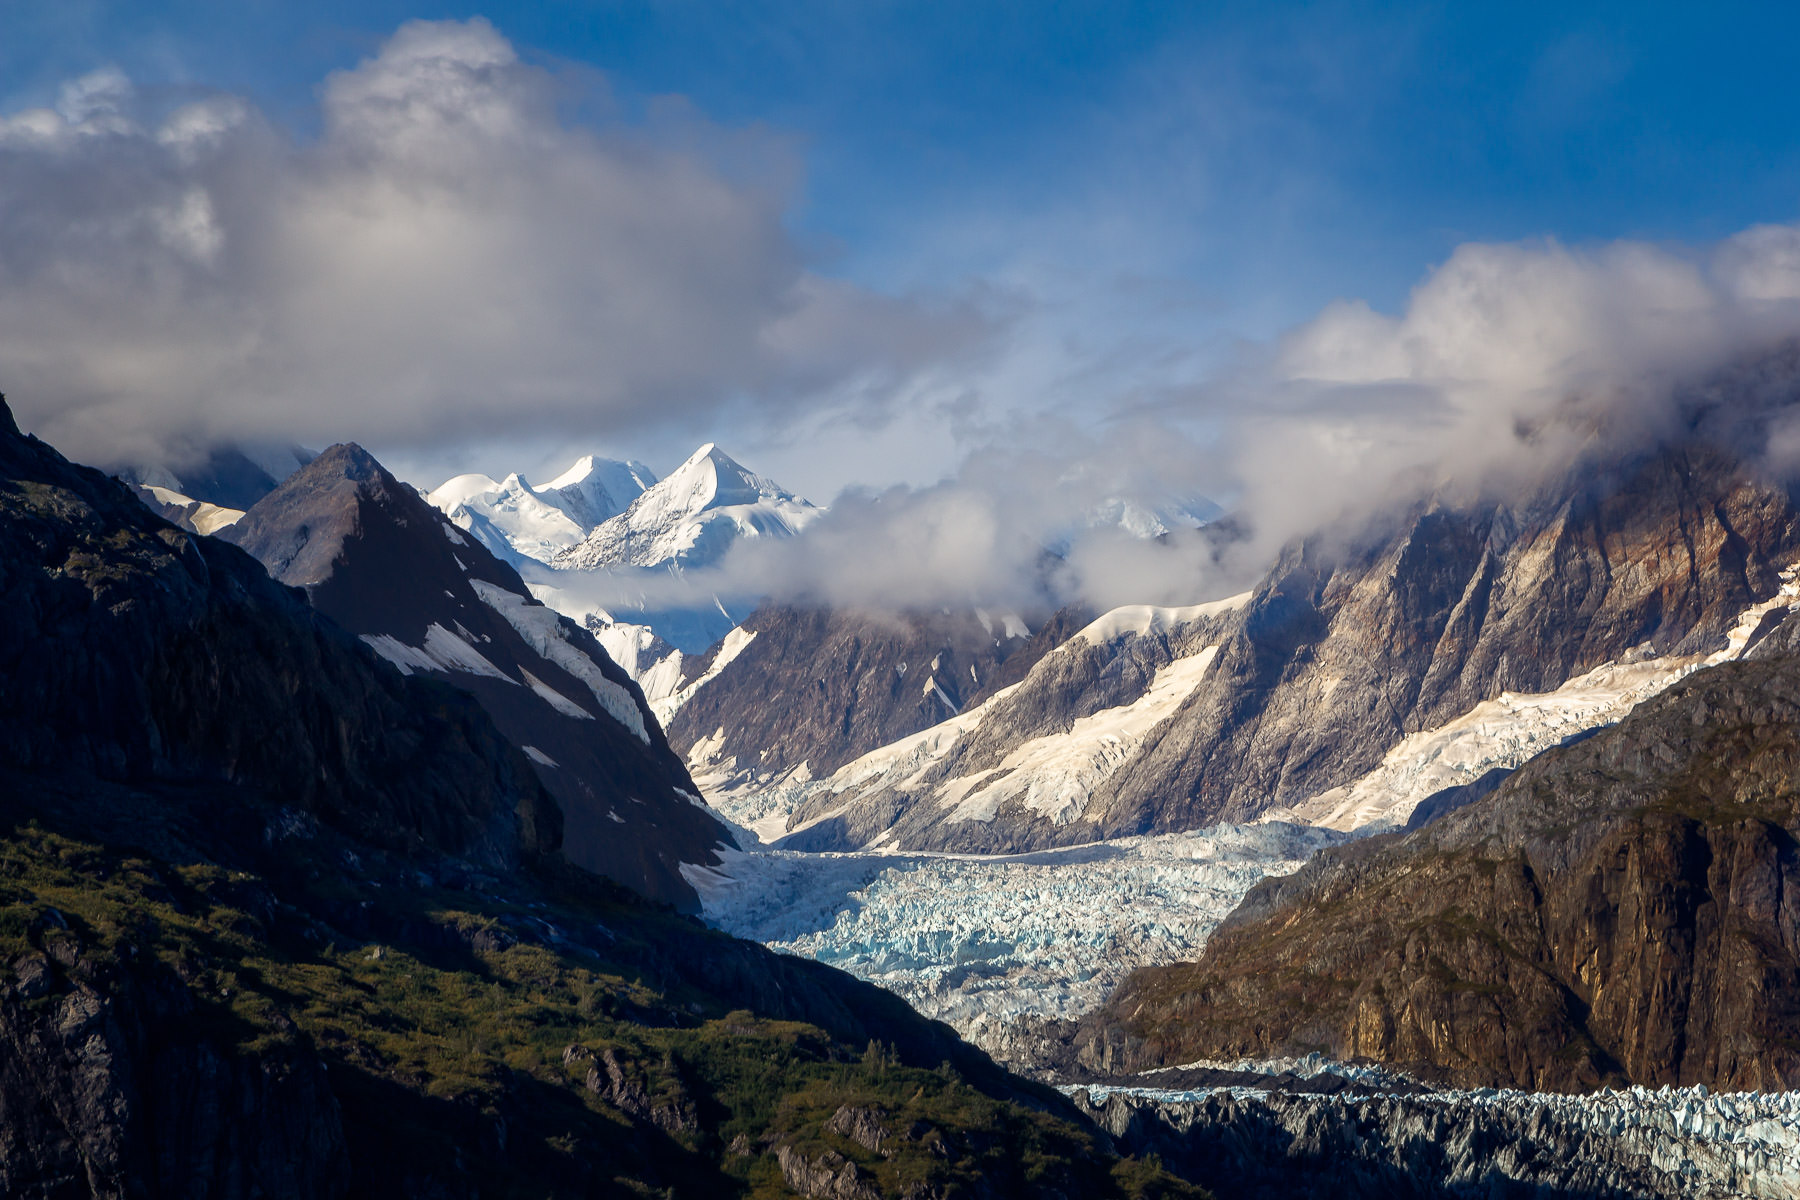 Mountains reach into the cloudy sky at Alaska's Glacier Bay National Park.